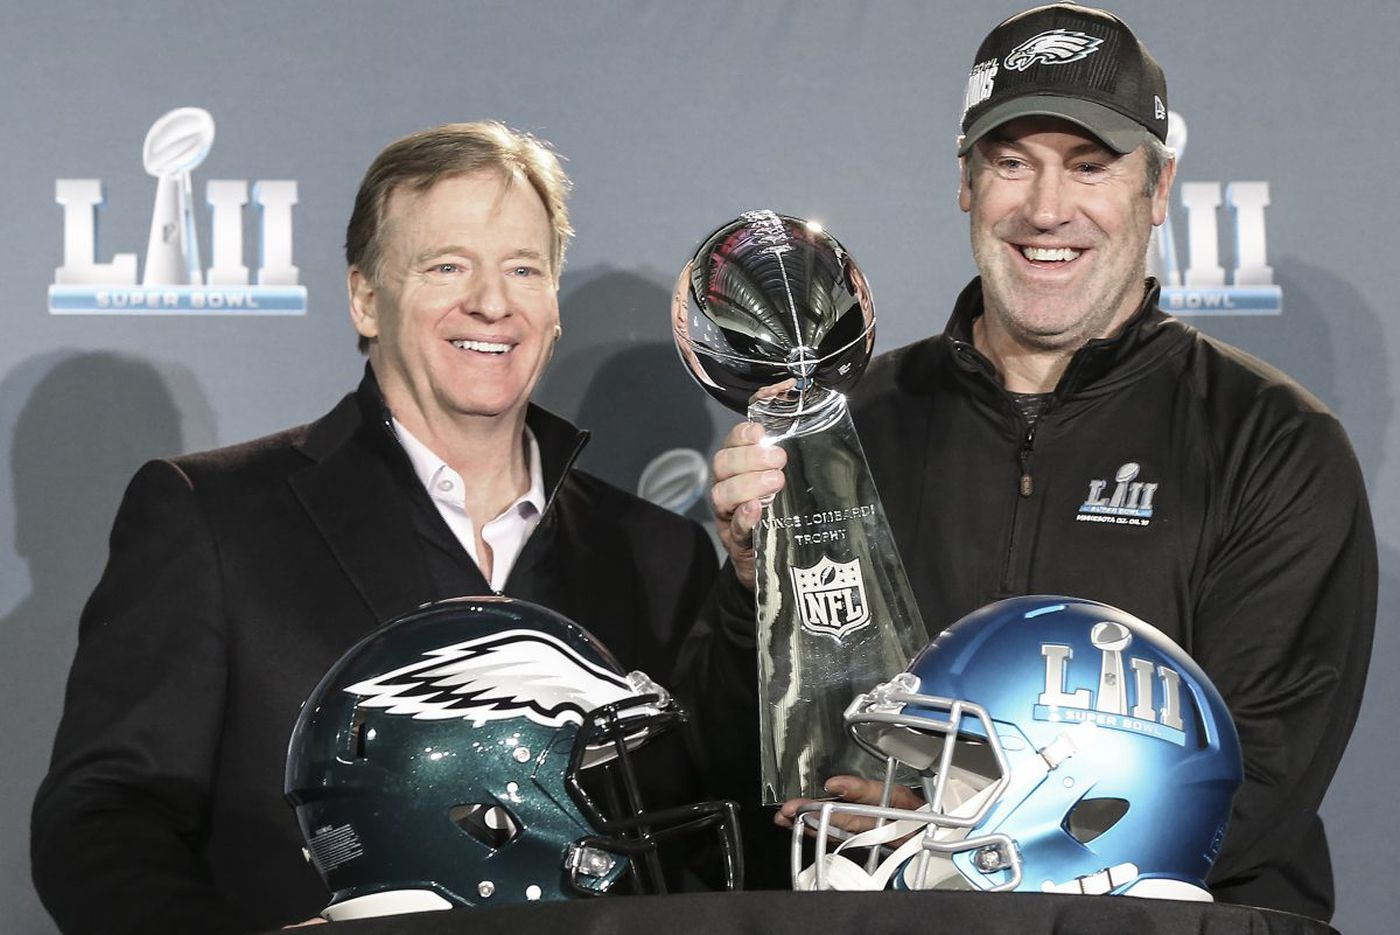 Super Bowl is 'surreal' for Doug Pederson, too: 'It really hasn't sunk in completely yet'